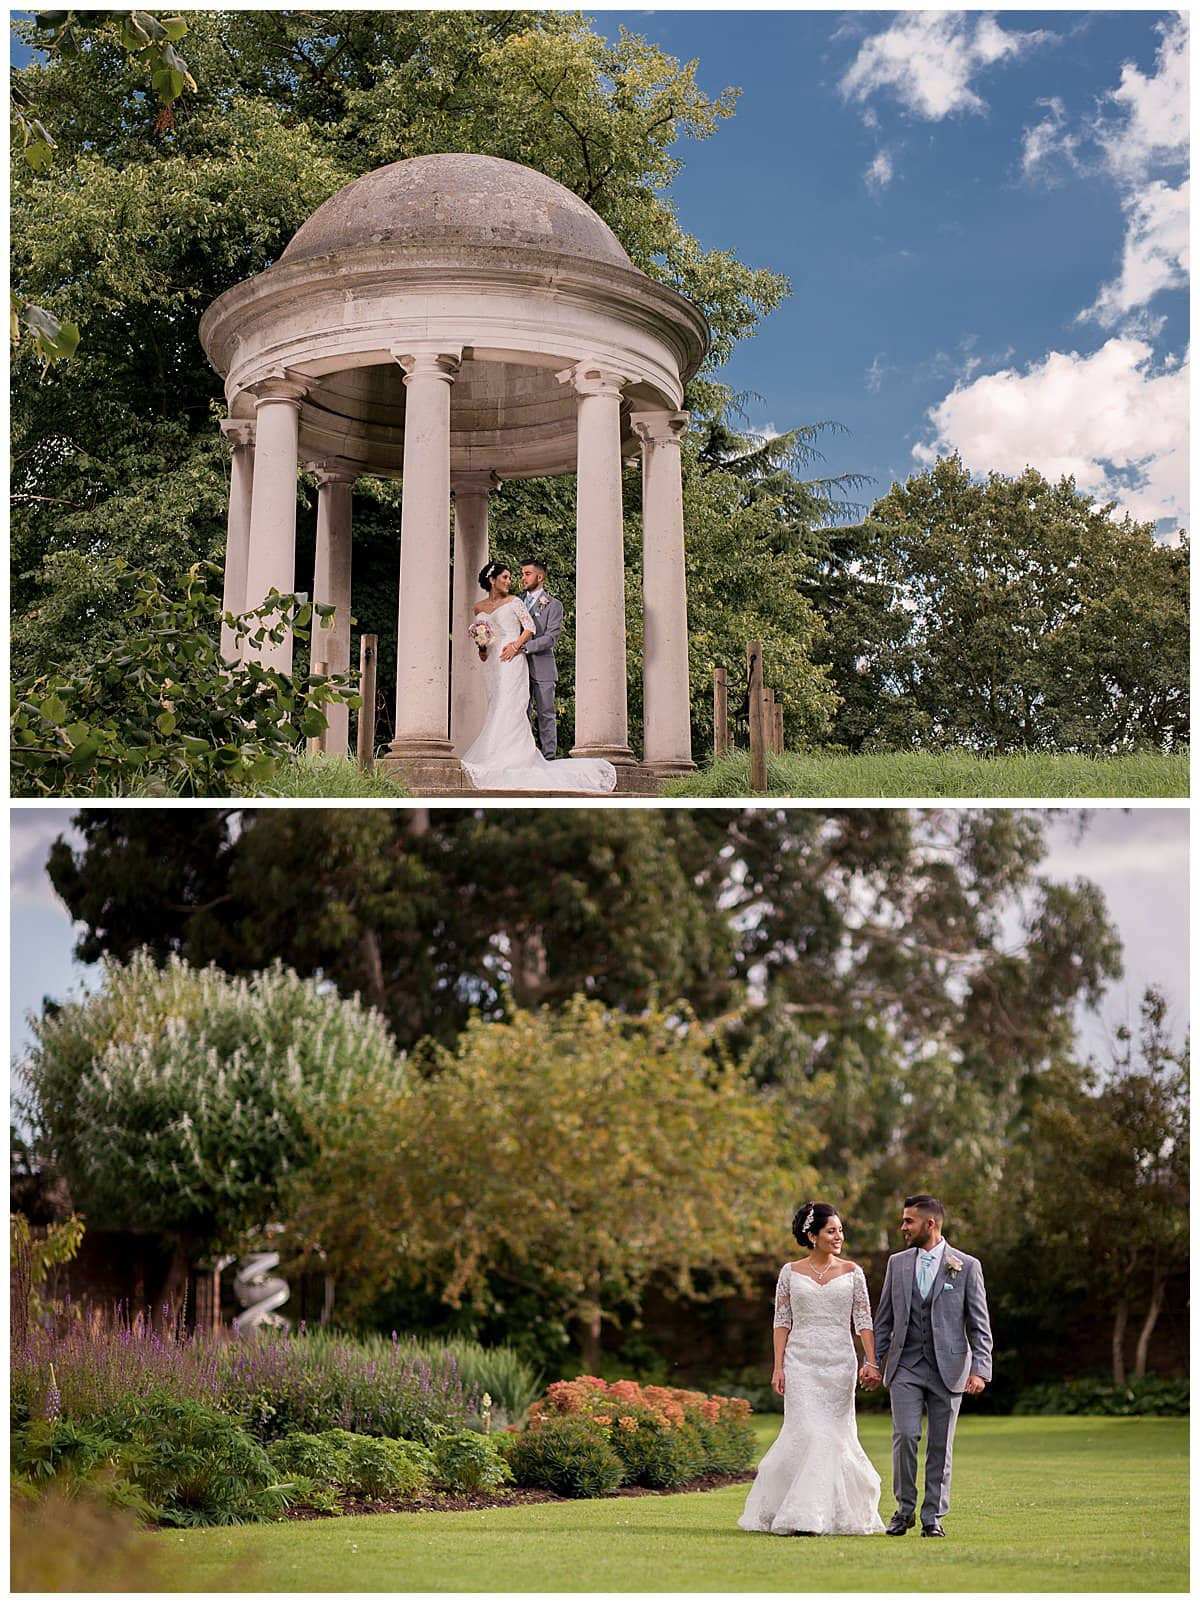 Kew Garden Weddings